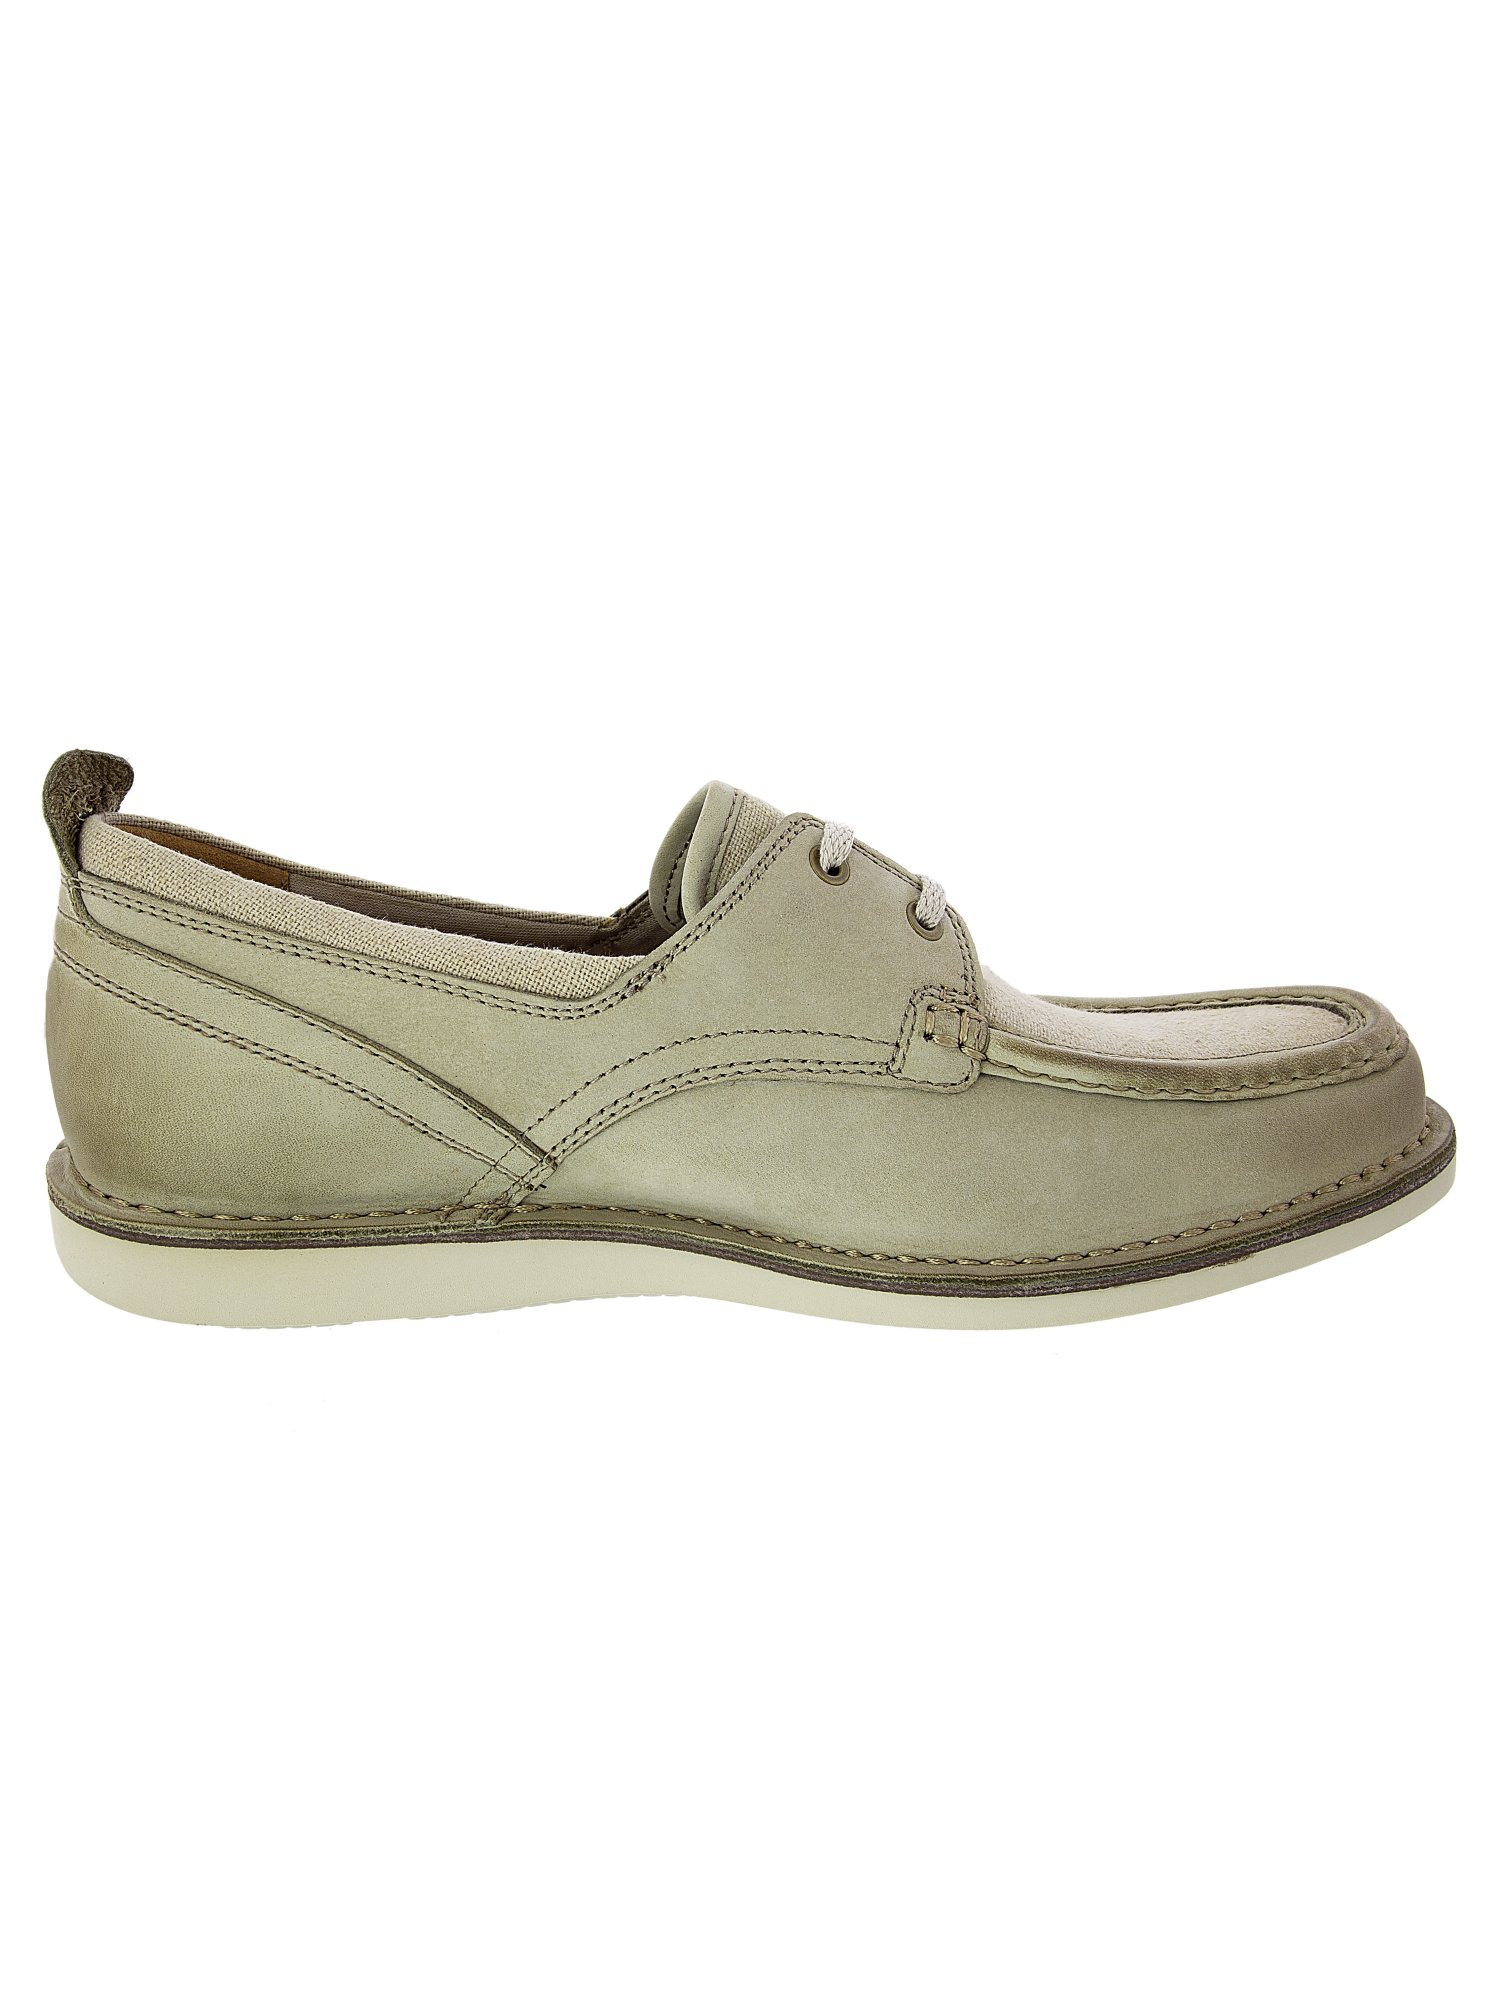 Rockport-Homme-039-S-Eastern-Standard-Boat-Moc-cuir-Athletic-Boating-Chaussure miniature 5